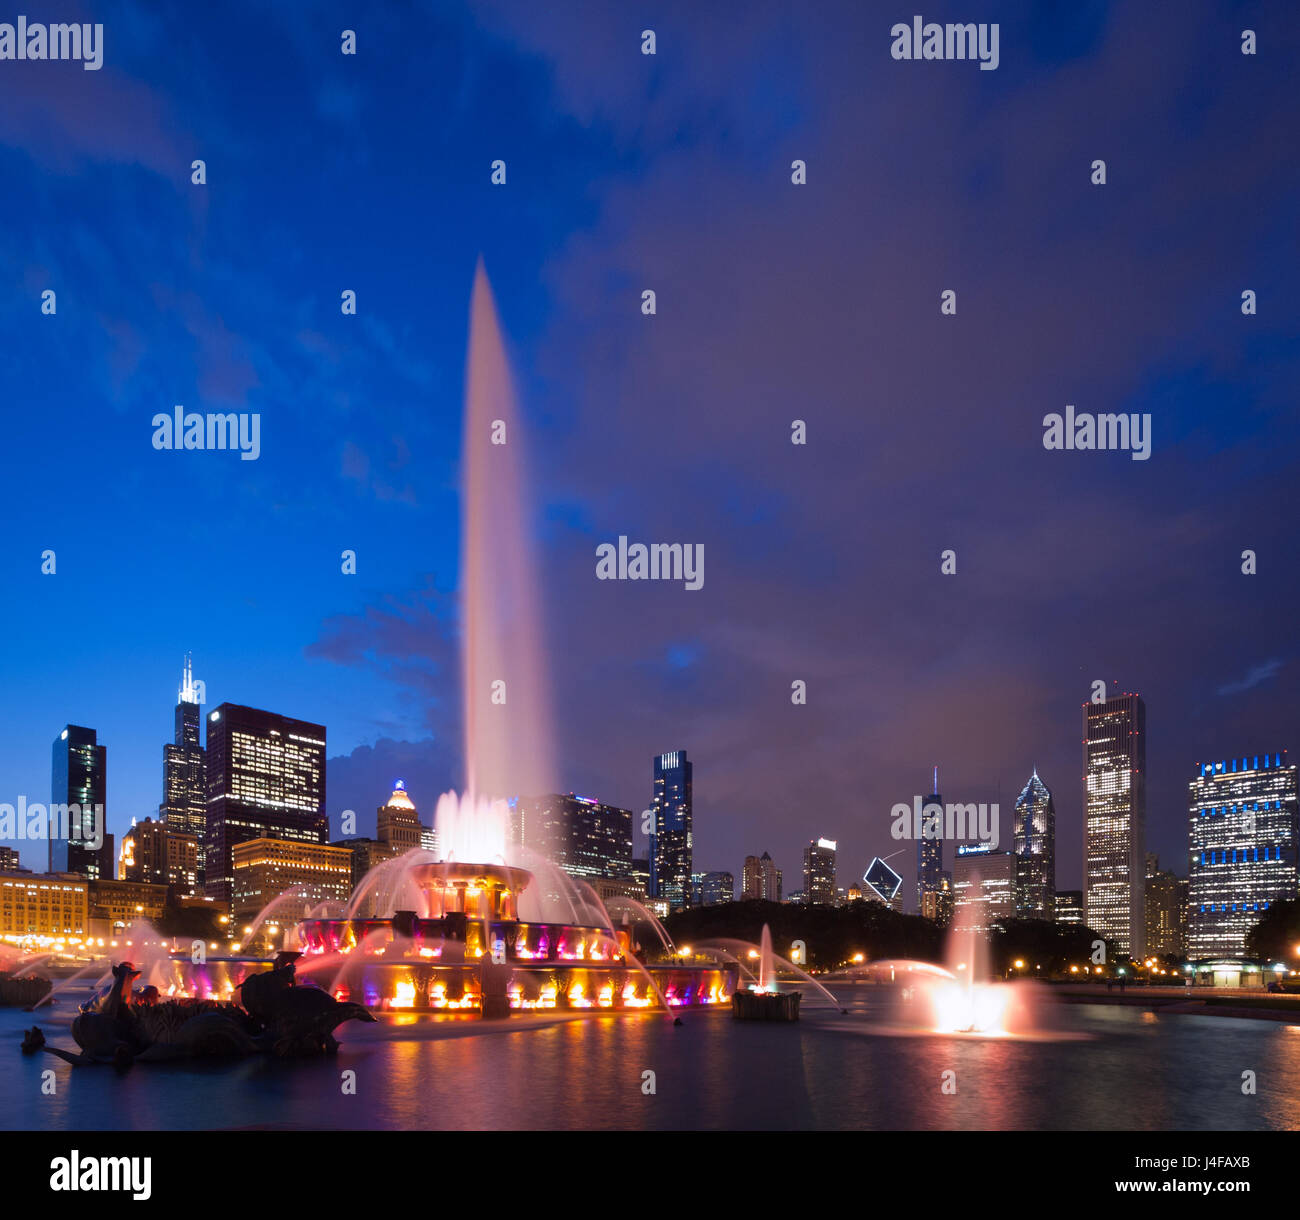 The spectacular Buckingham Fountain at night, in summer, in Grant Park in Chicago, Illinois. Stock Photo